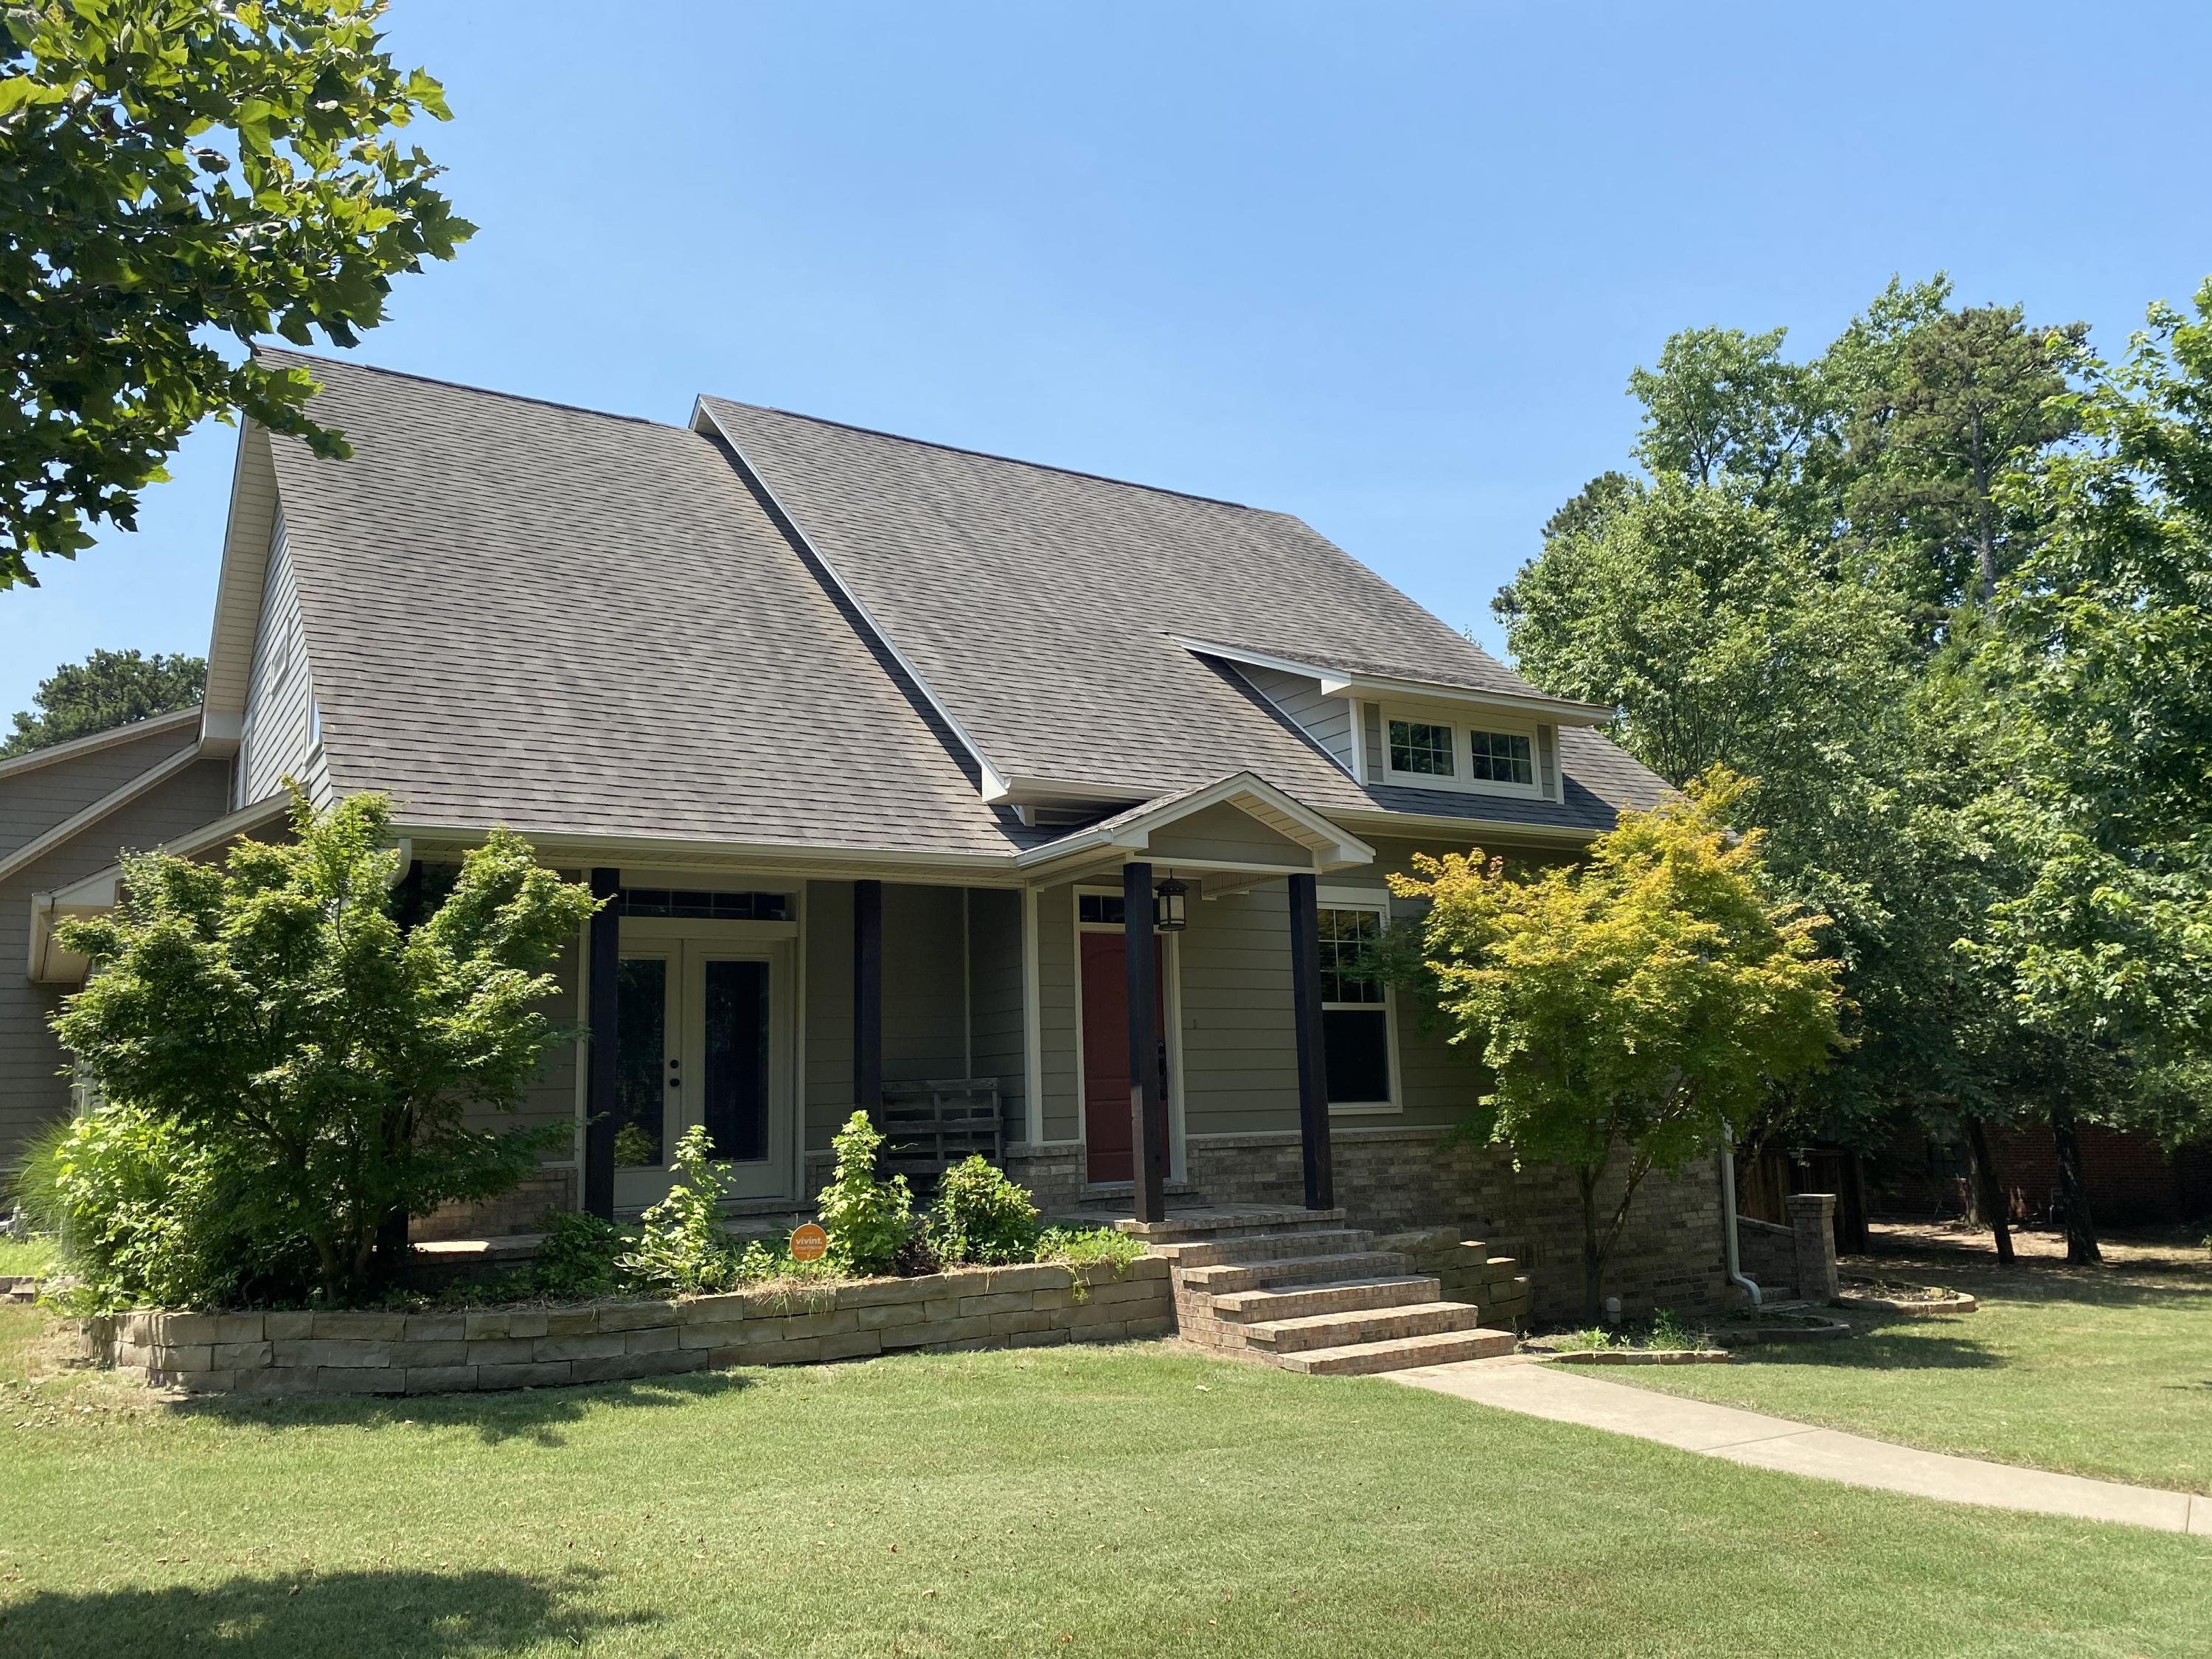 Large photo 2 of home for sale at 2103 6th Street, Russellville, AR